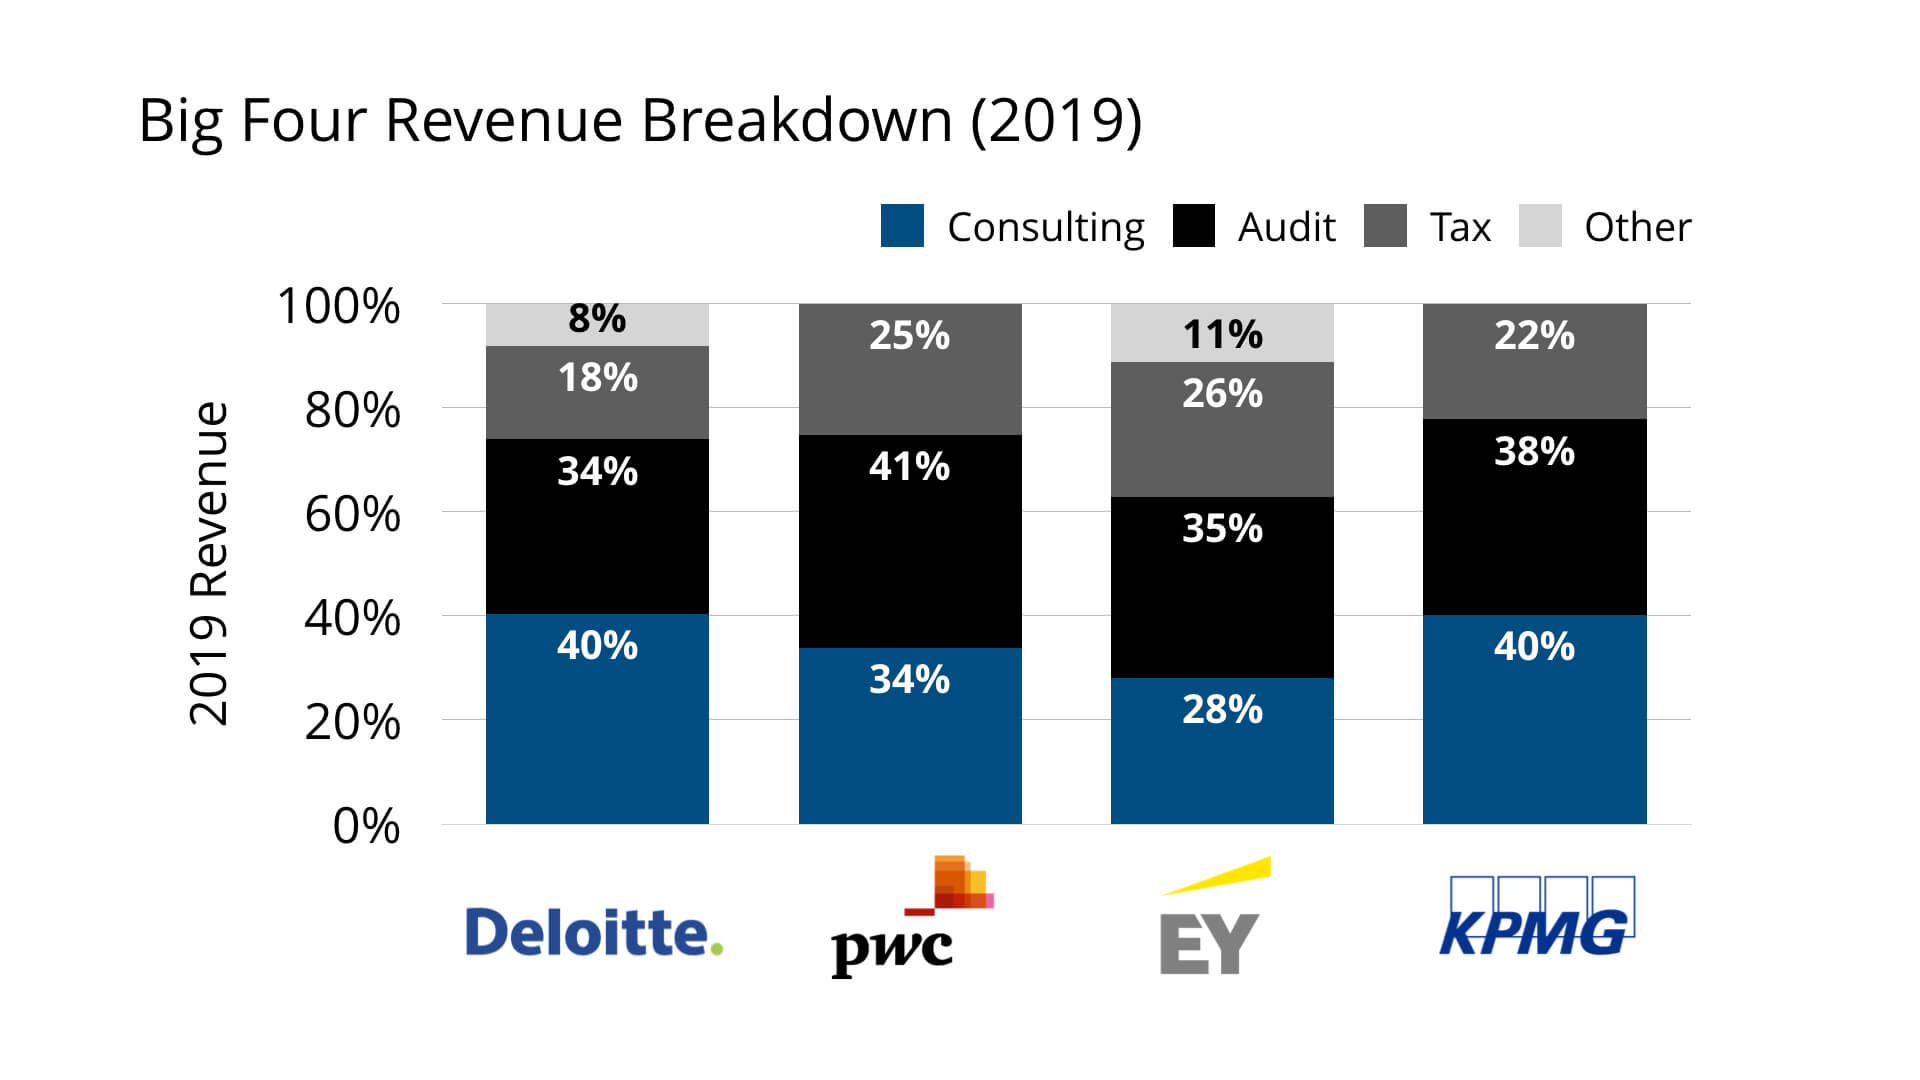 Big Four Accounting Firms Revenue Breakdown